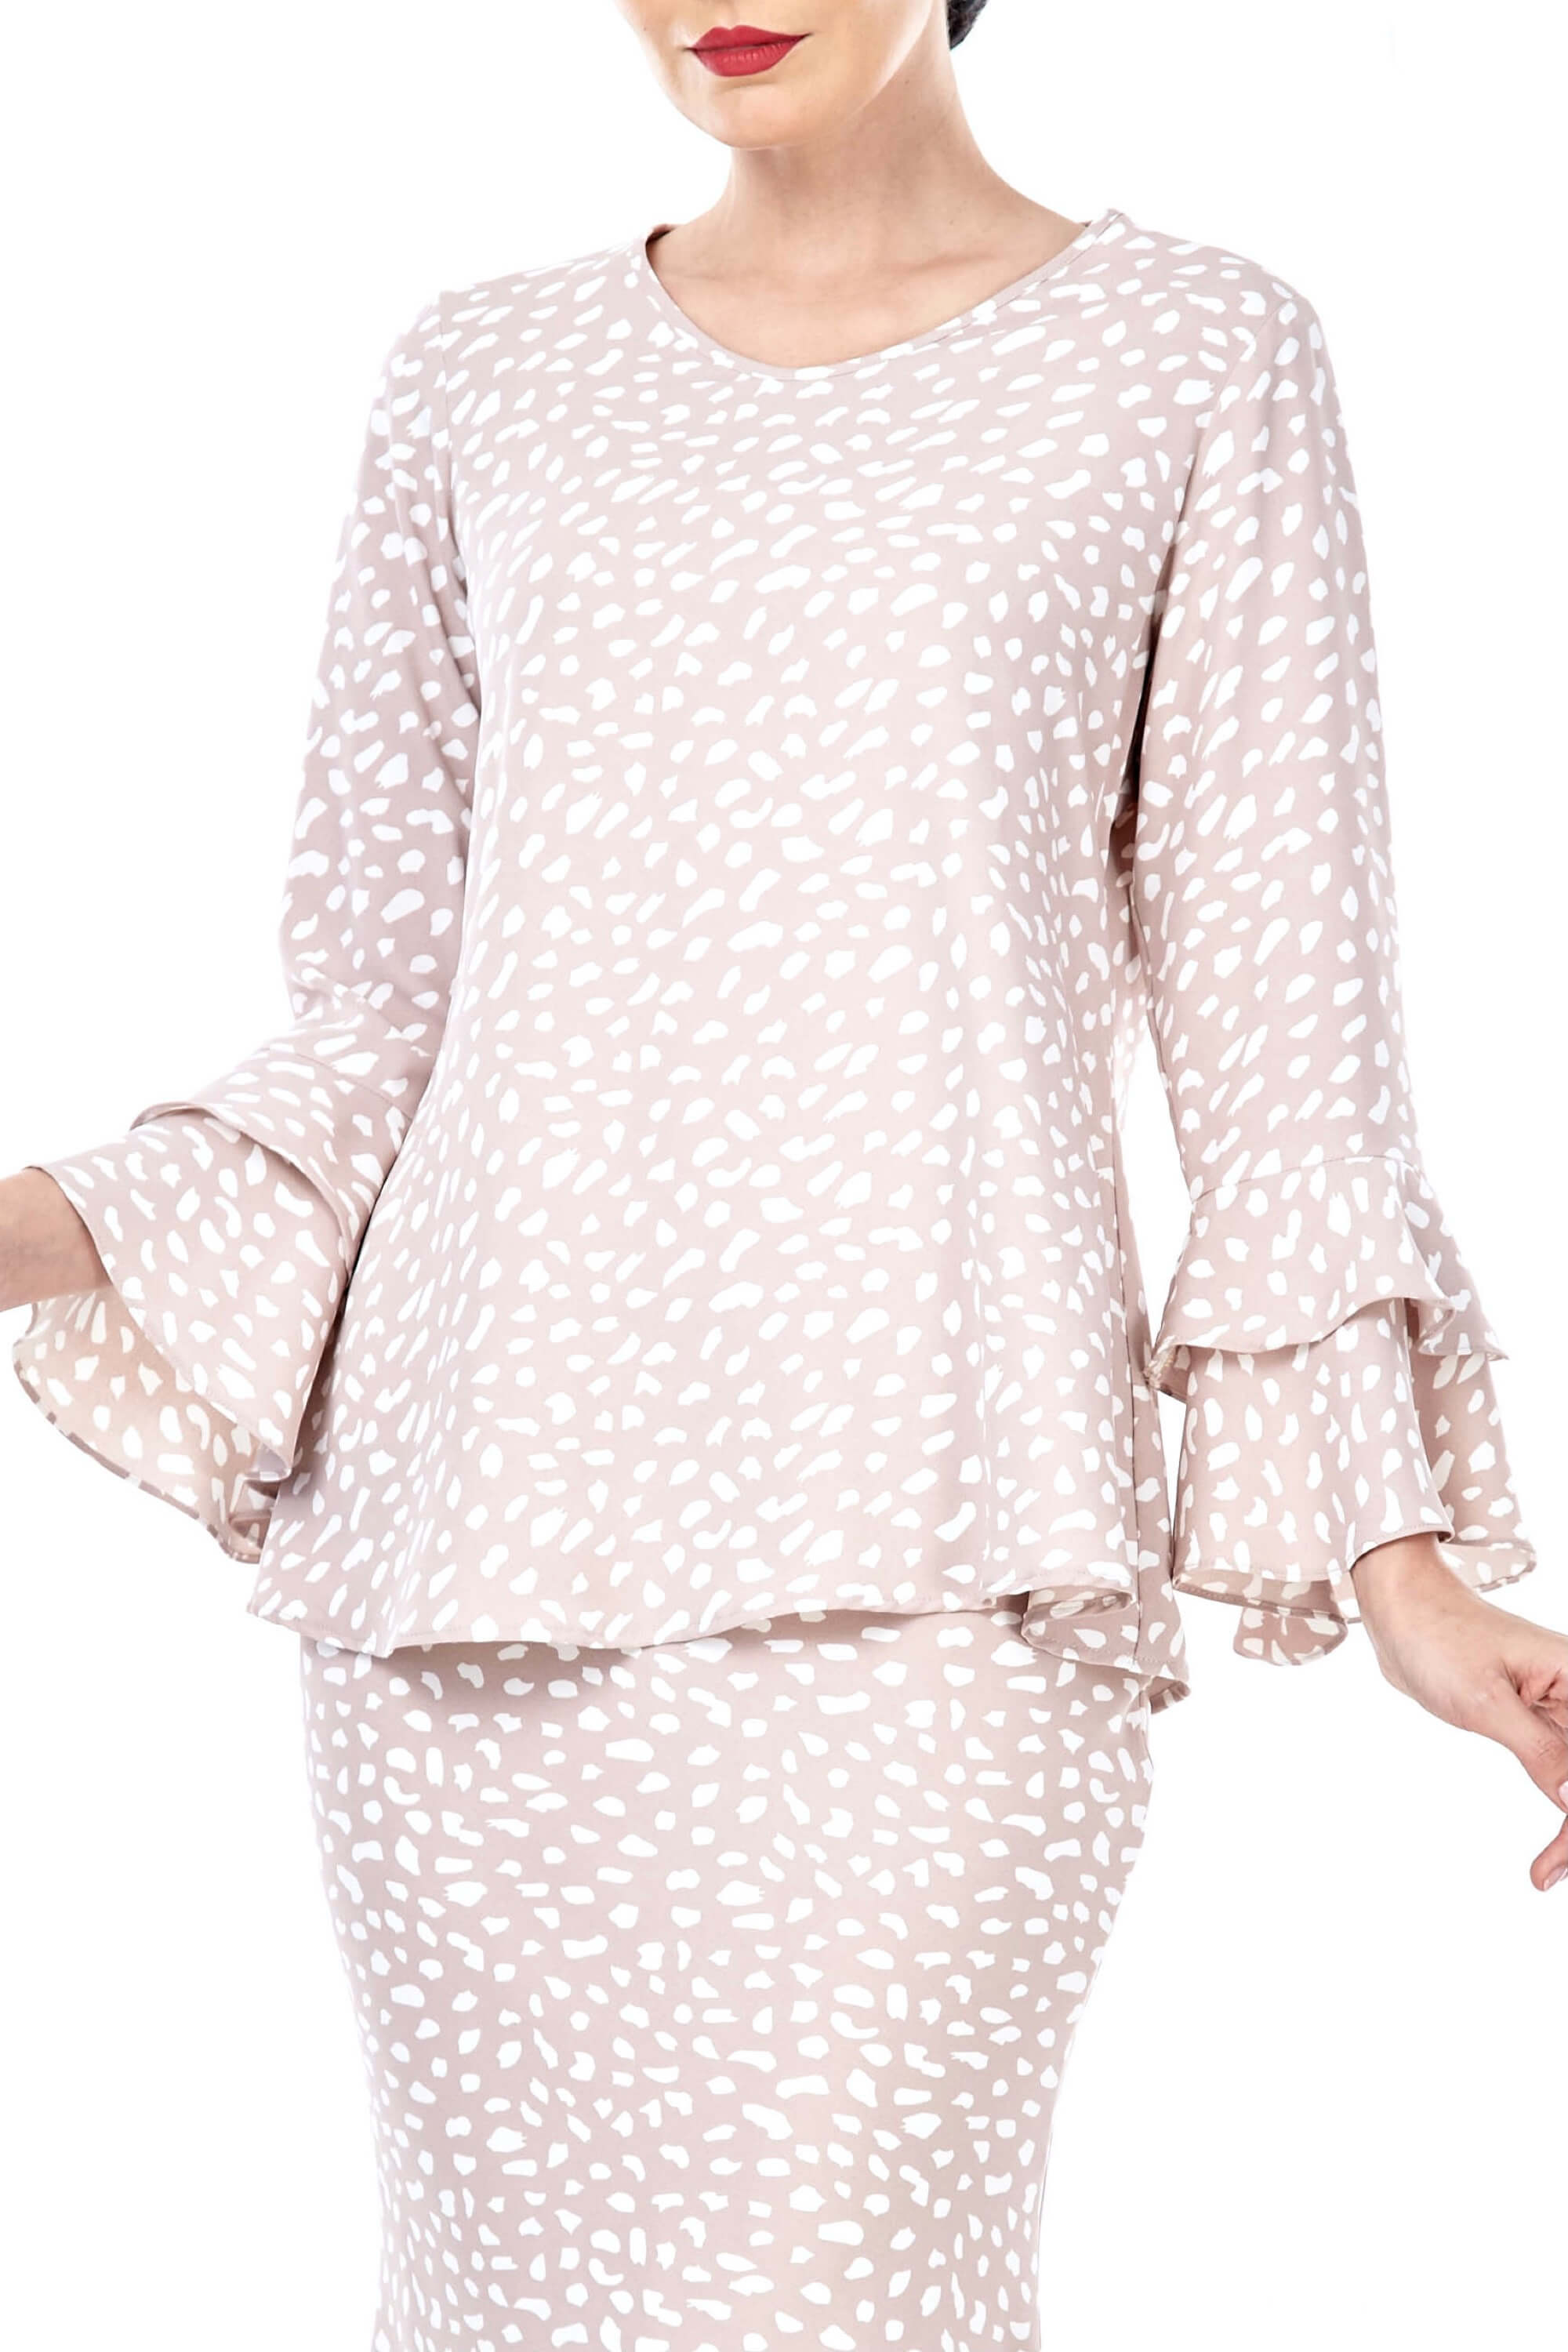 Mona Sand Spotted Blouse 5